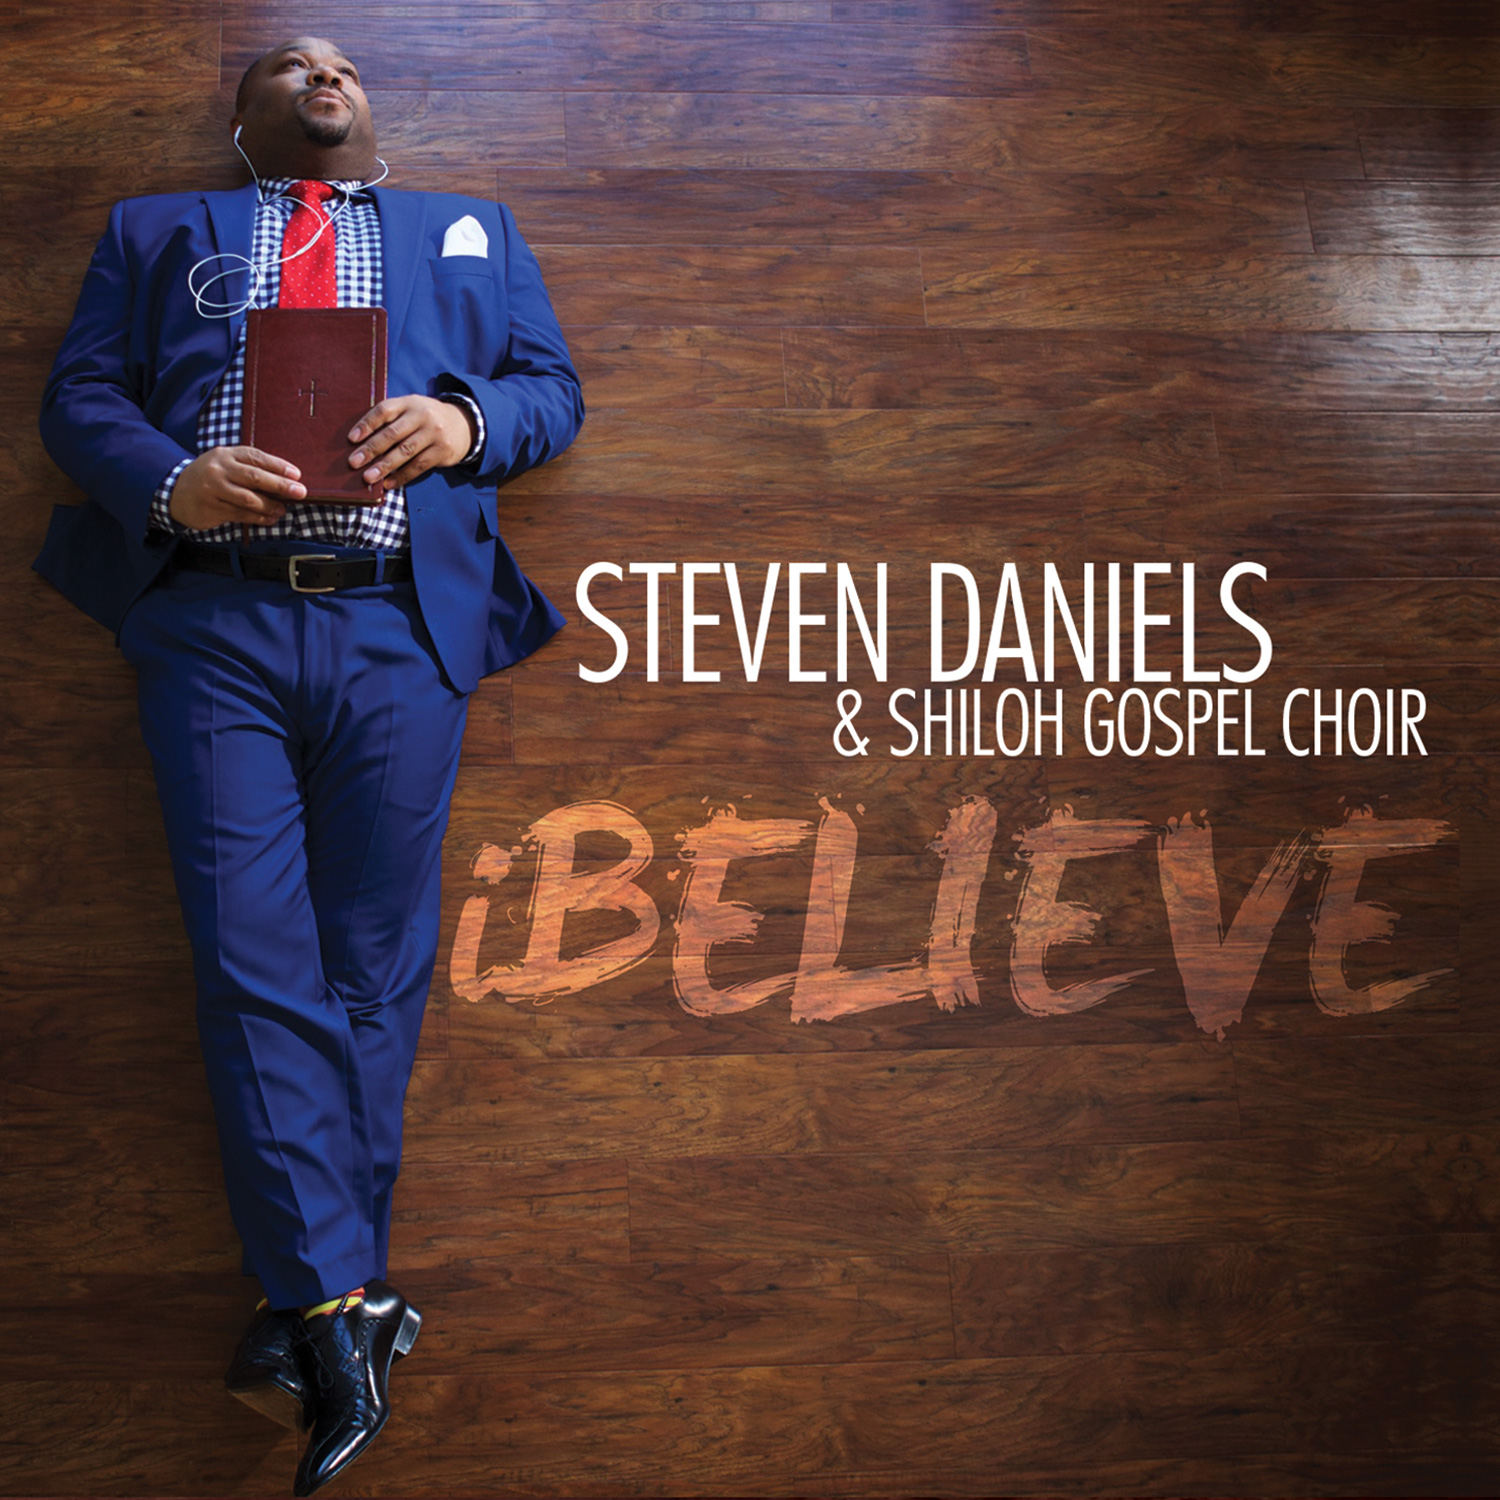 I BELIEVE COVER